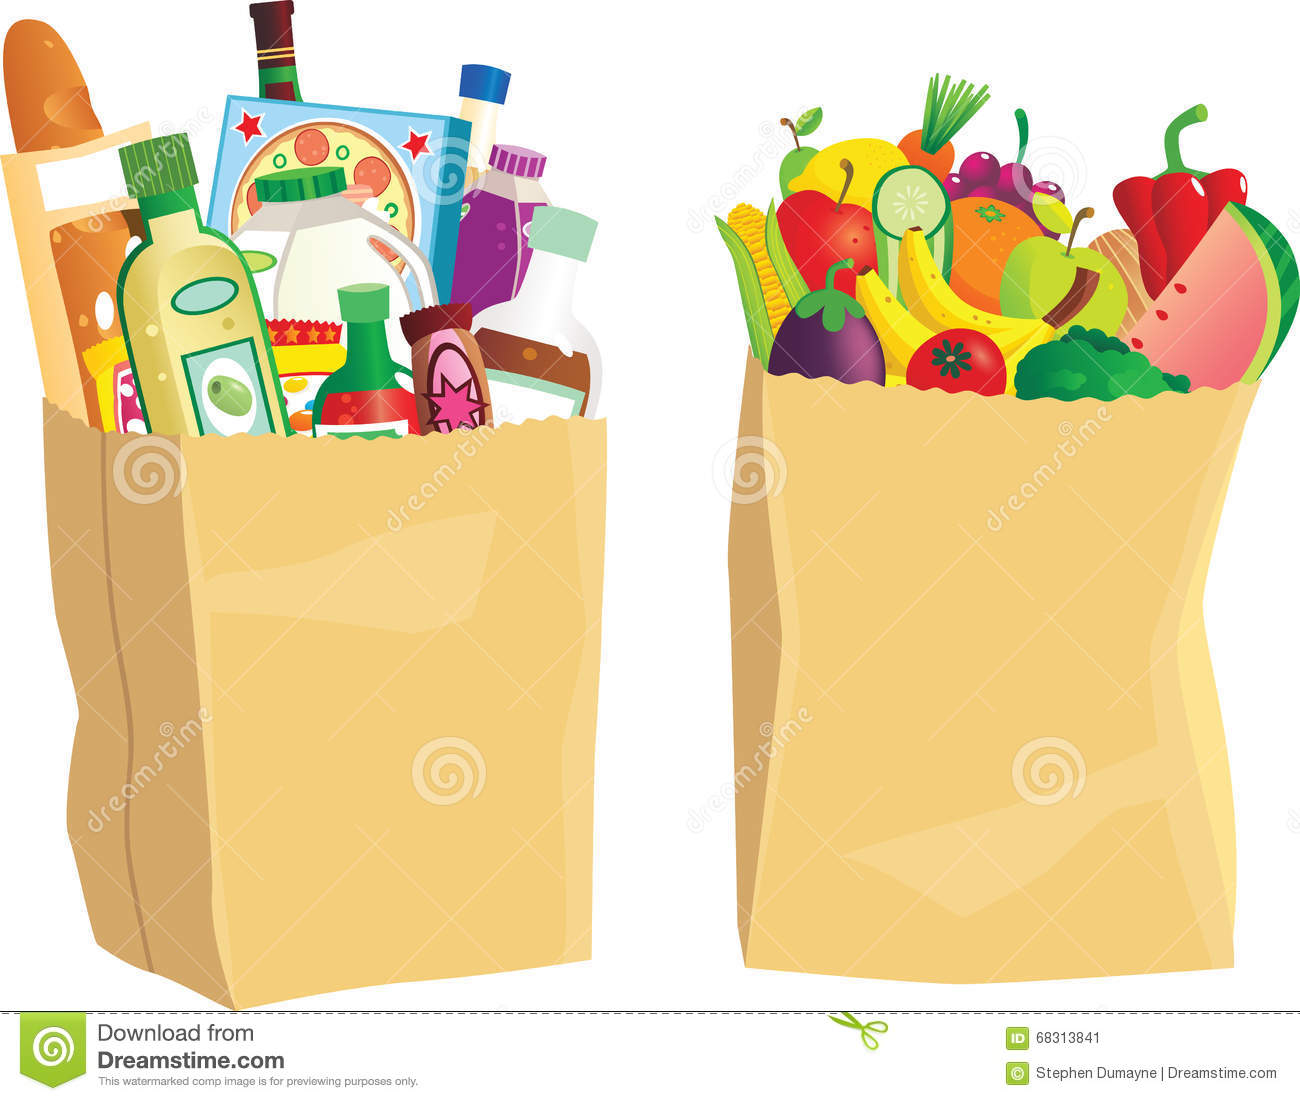 94 Of The Healthiest Clean Eating Packaged Foods You Can ... |Bagged Food Items